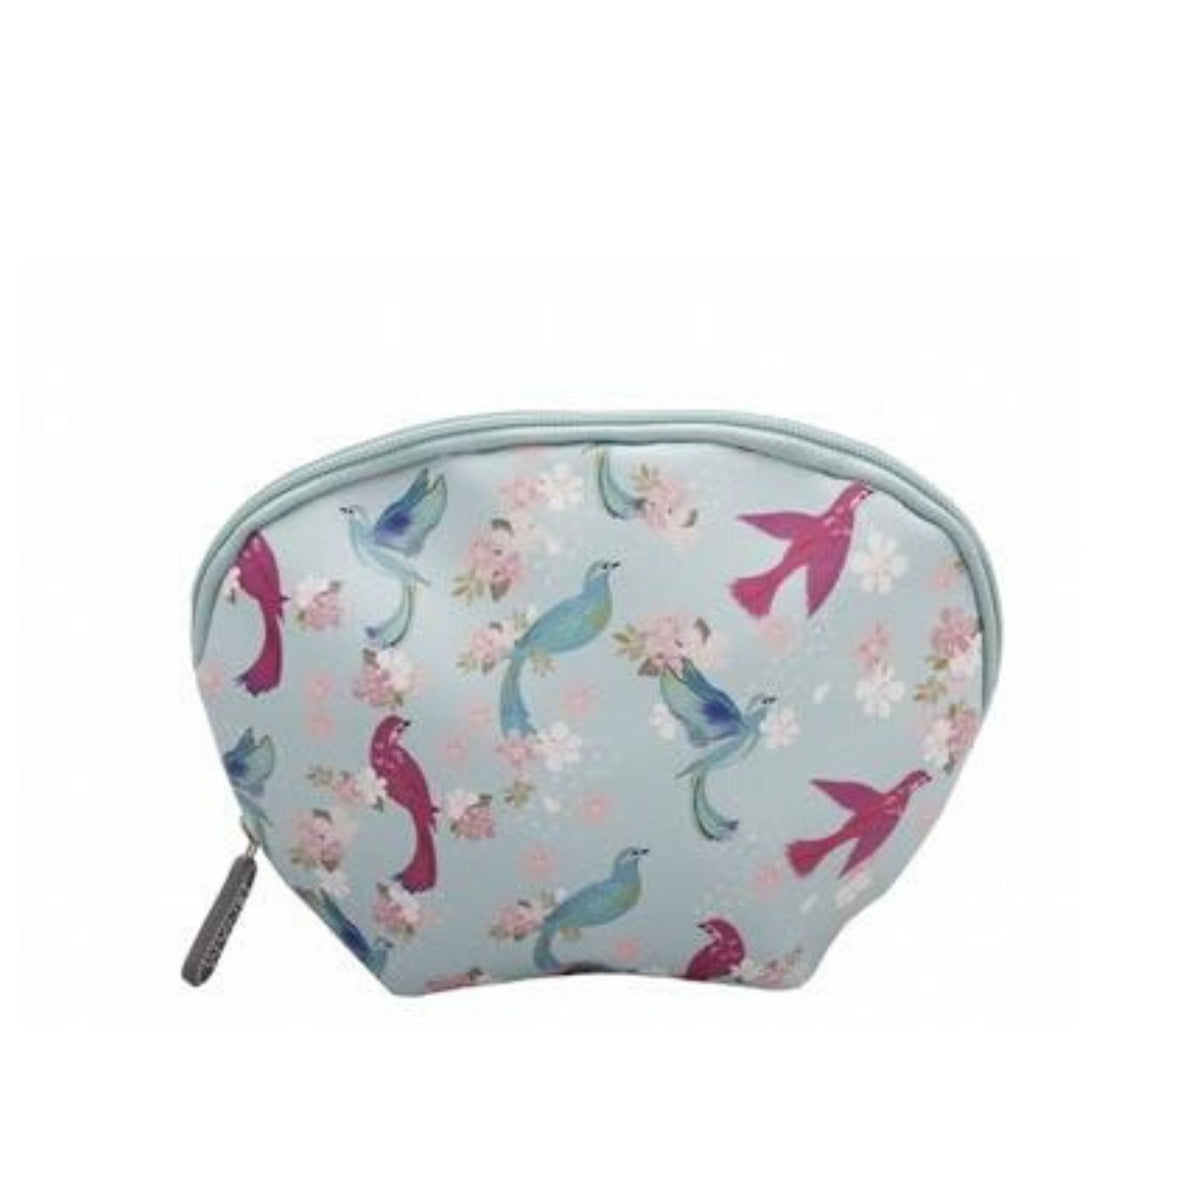 Exotic Bird Print Oval Make-Up Pouch